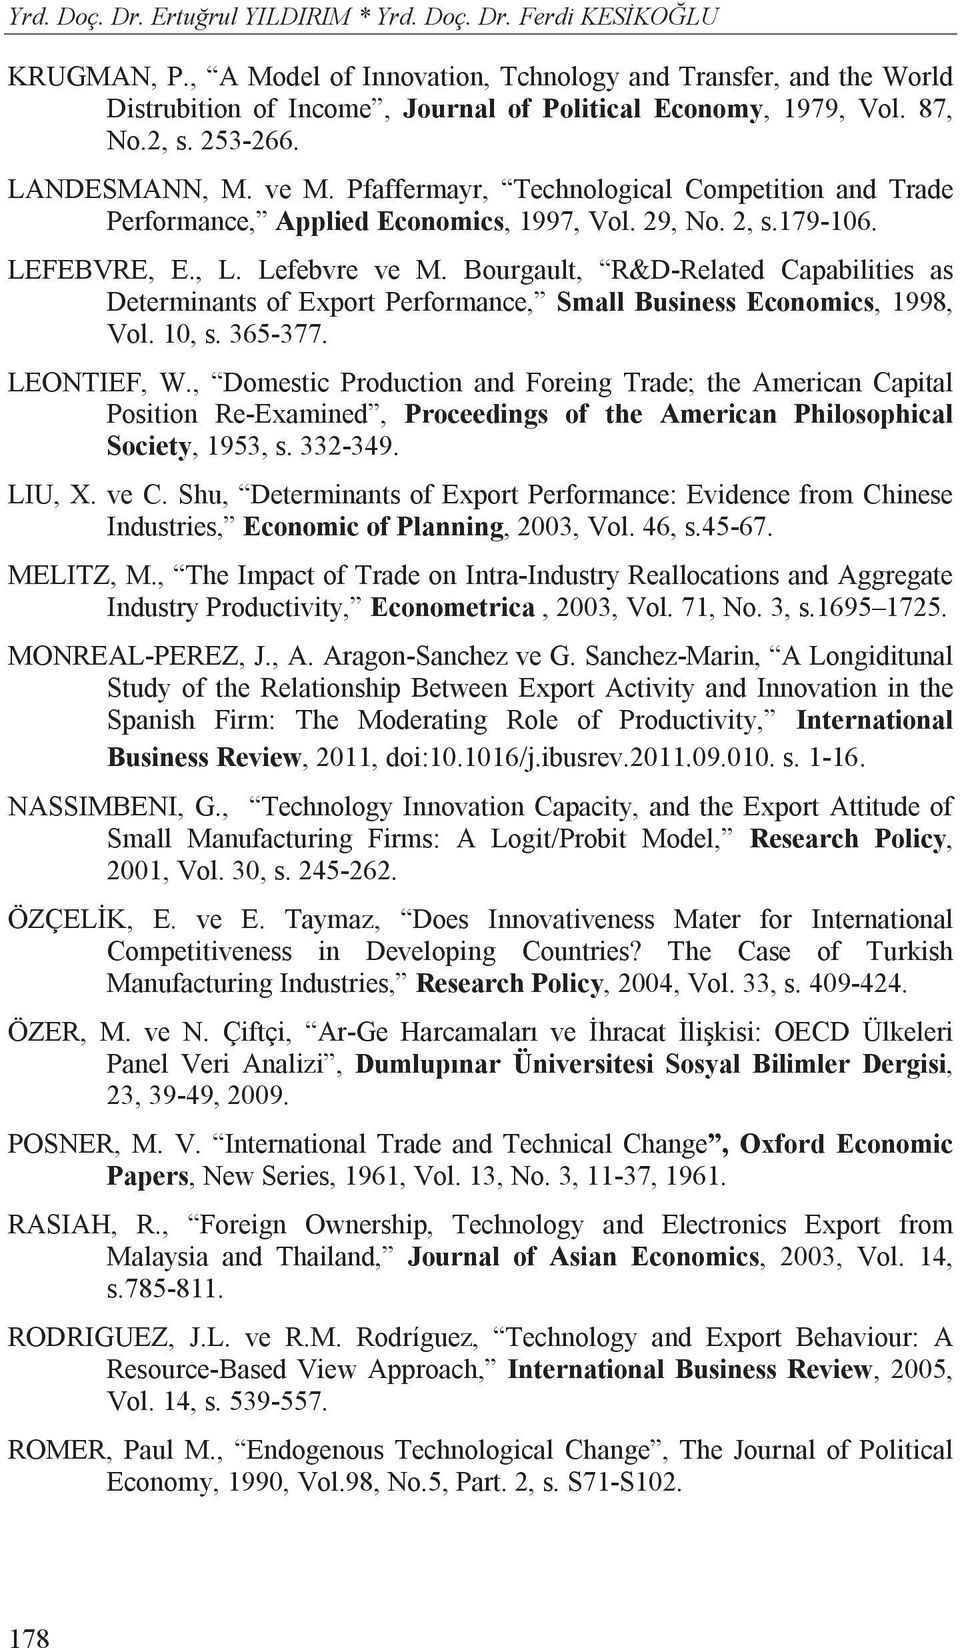 Pfaffermayr, Technological Competition and Trade Performance, Applied Economics, 1997, Vol. 29, No. 2, s.179-106. LEFEBVRE, E., L. Lefebvre ve M.